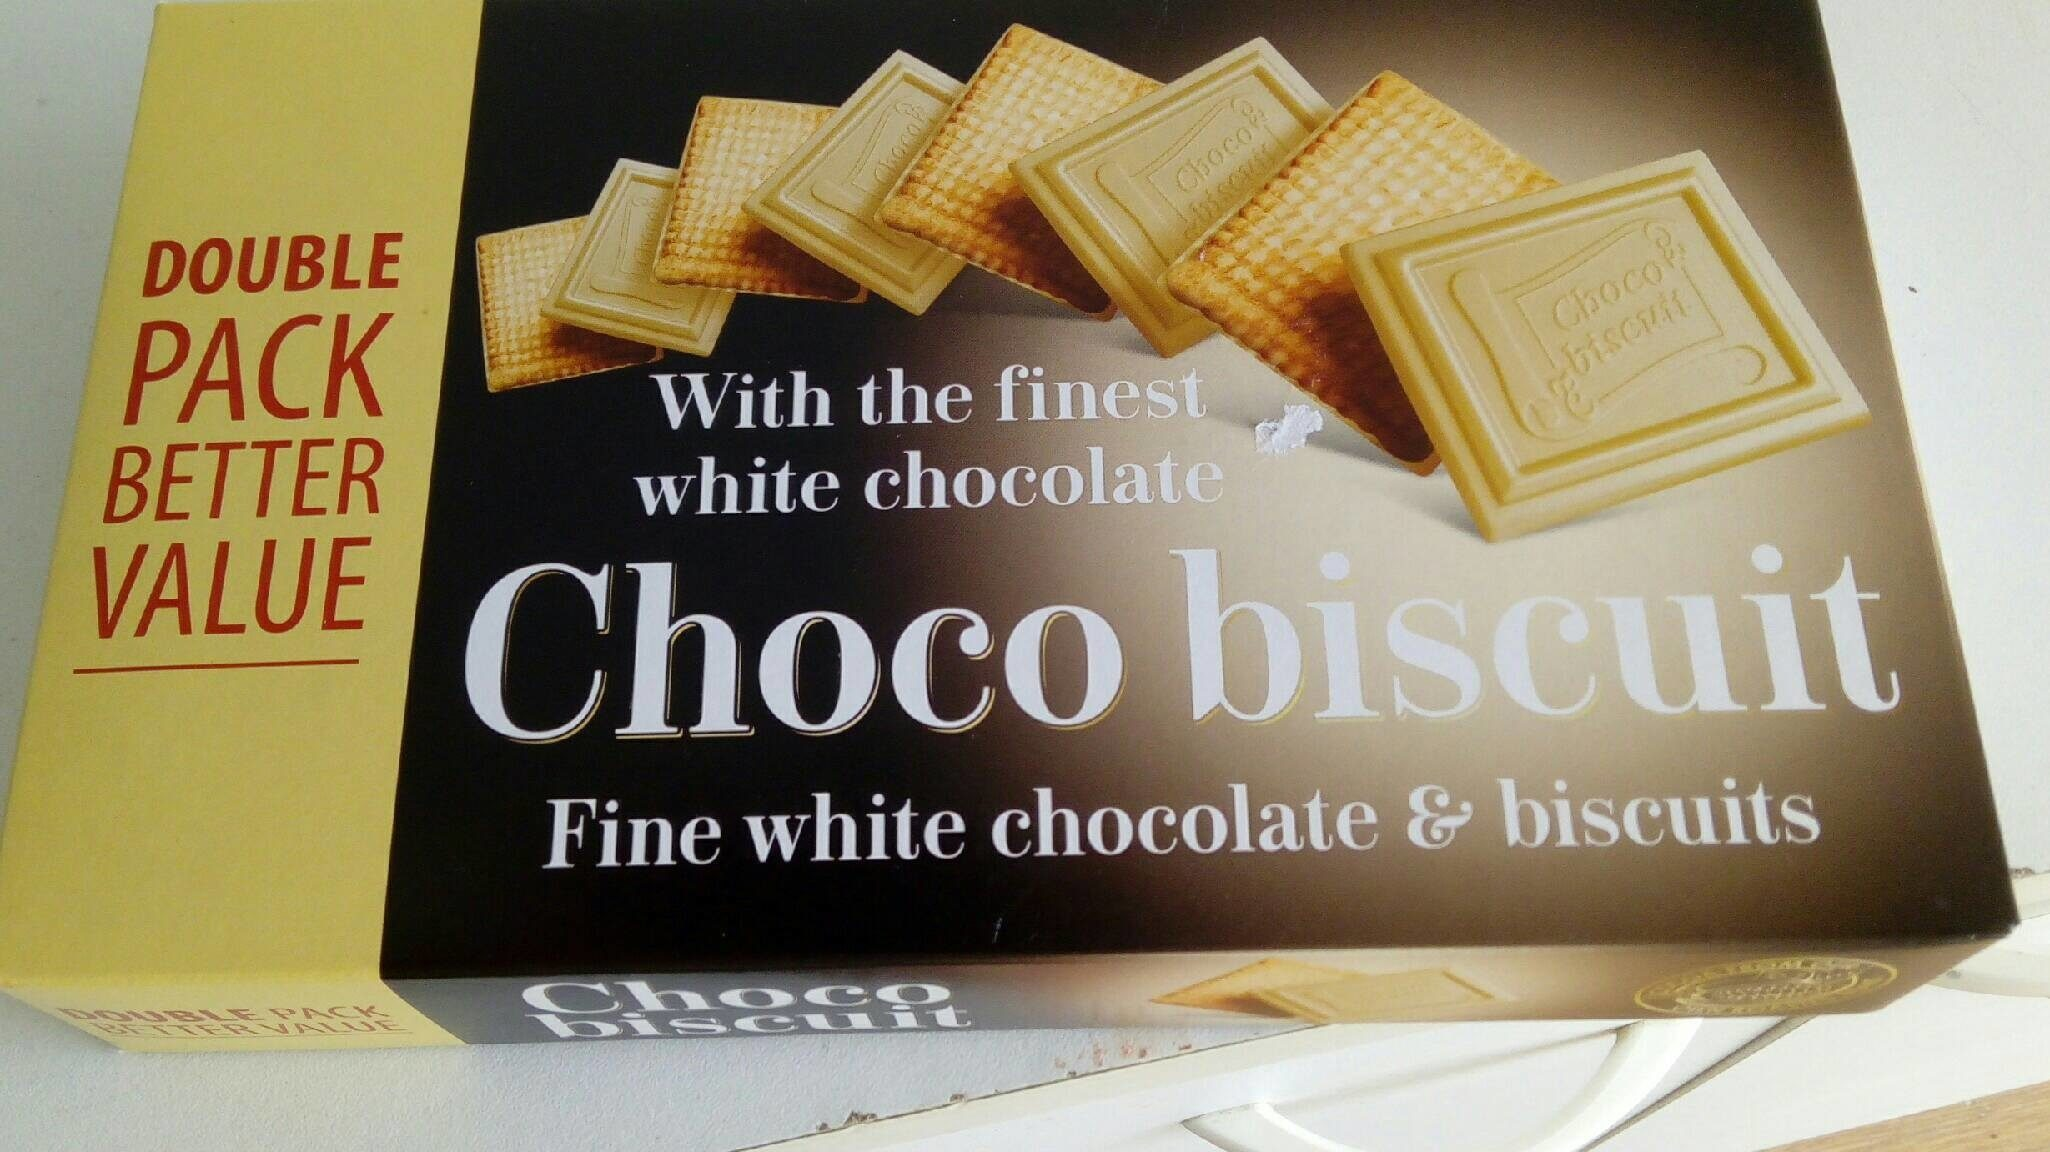 Choco biscuit blanc - Product